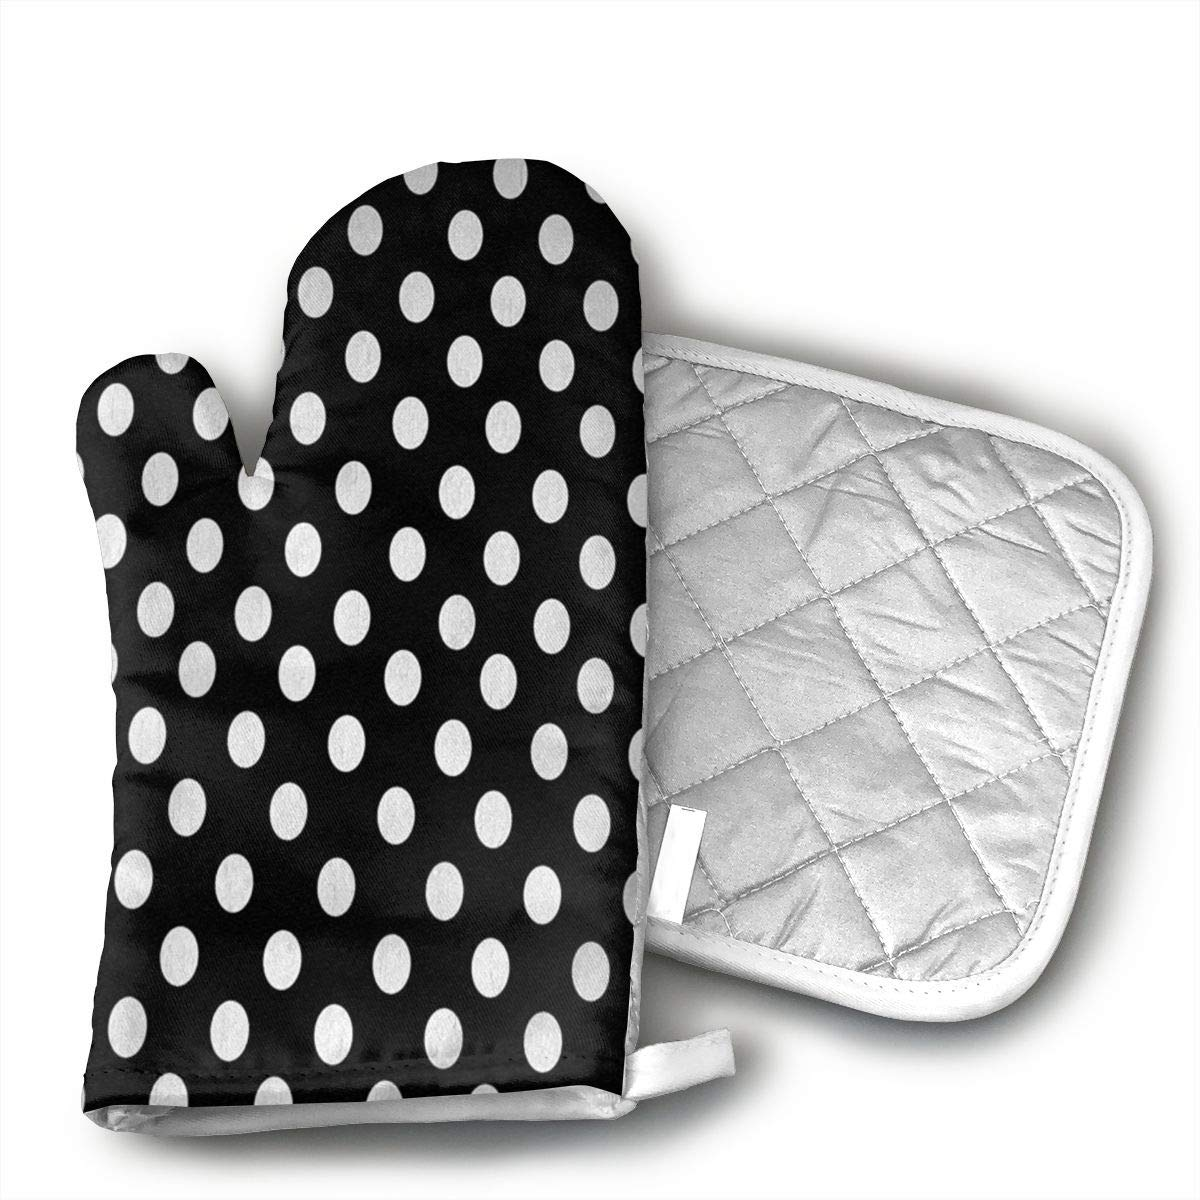 FSDGHVFIJTT Polka Dot Designs White Polka Dots On Classy Black Resistant Oven Gloves to Protect Hands and Surfaces with Non-Slip Grip, Hanging Loop-Ideal for Handling Hot Cookware Items